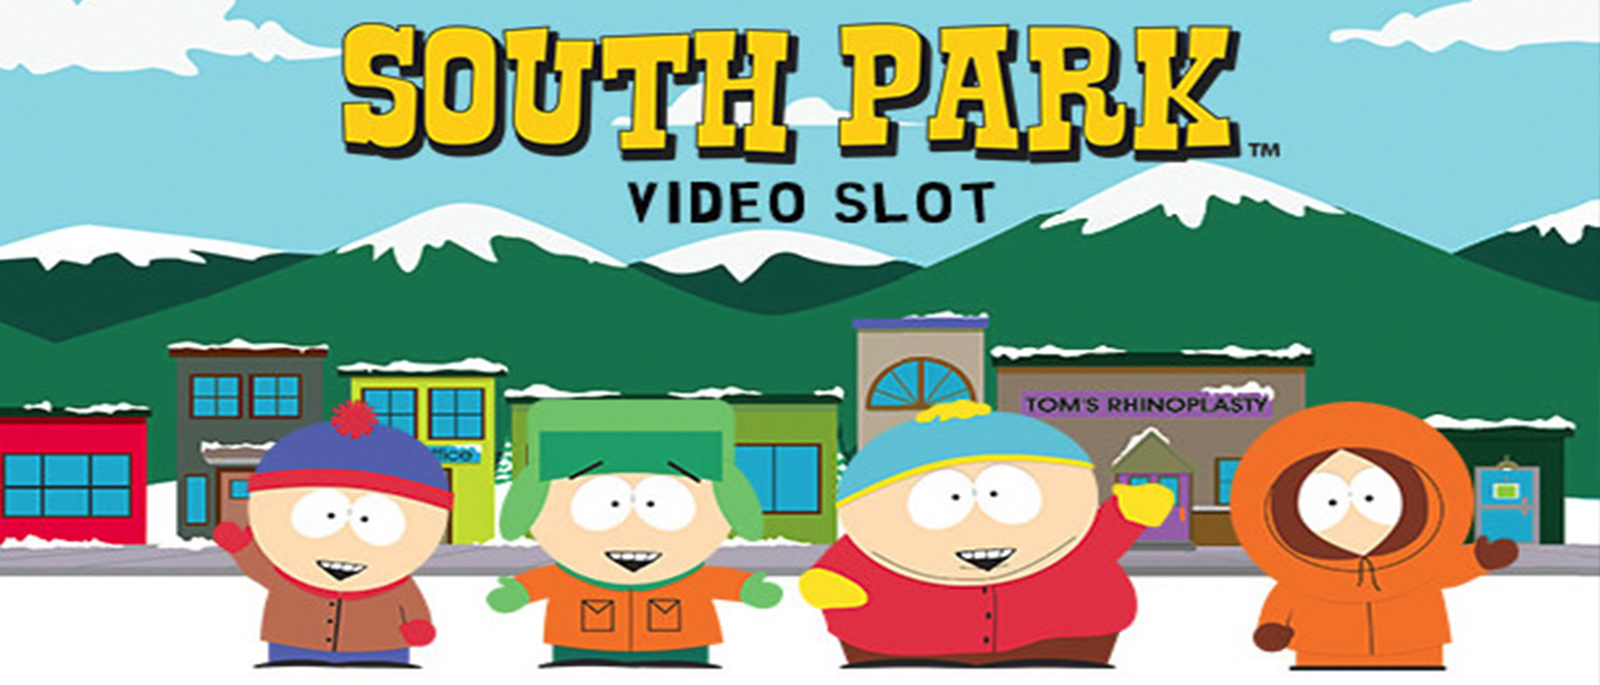 South Park Video Slot Netent